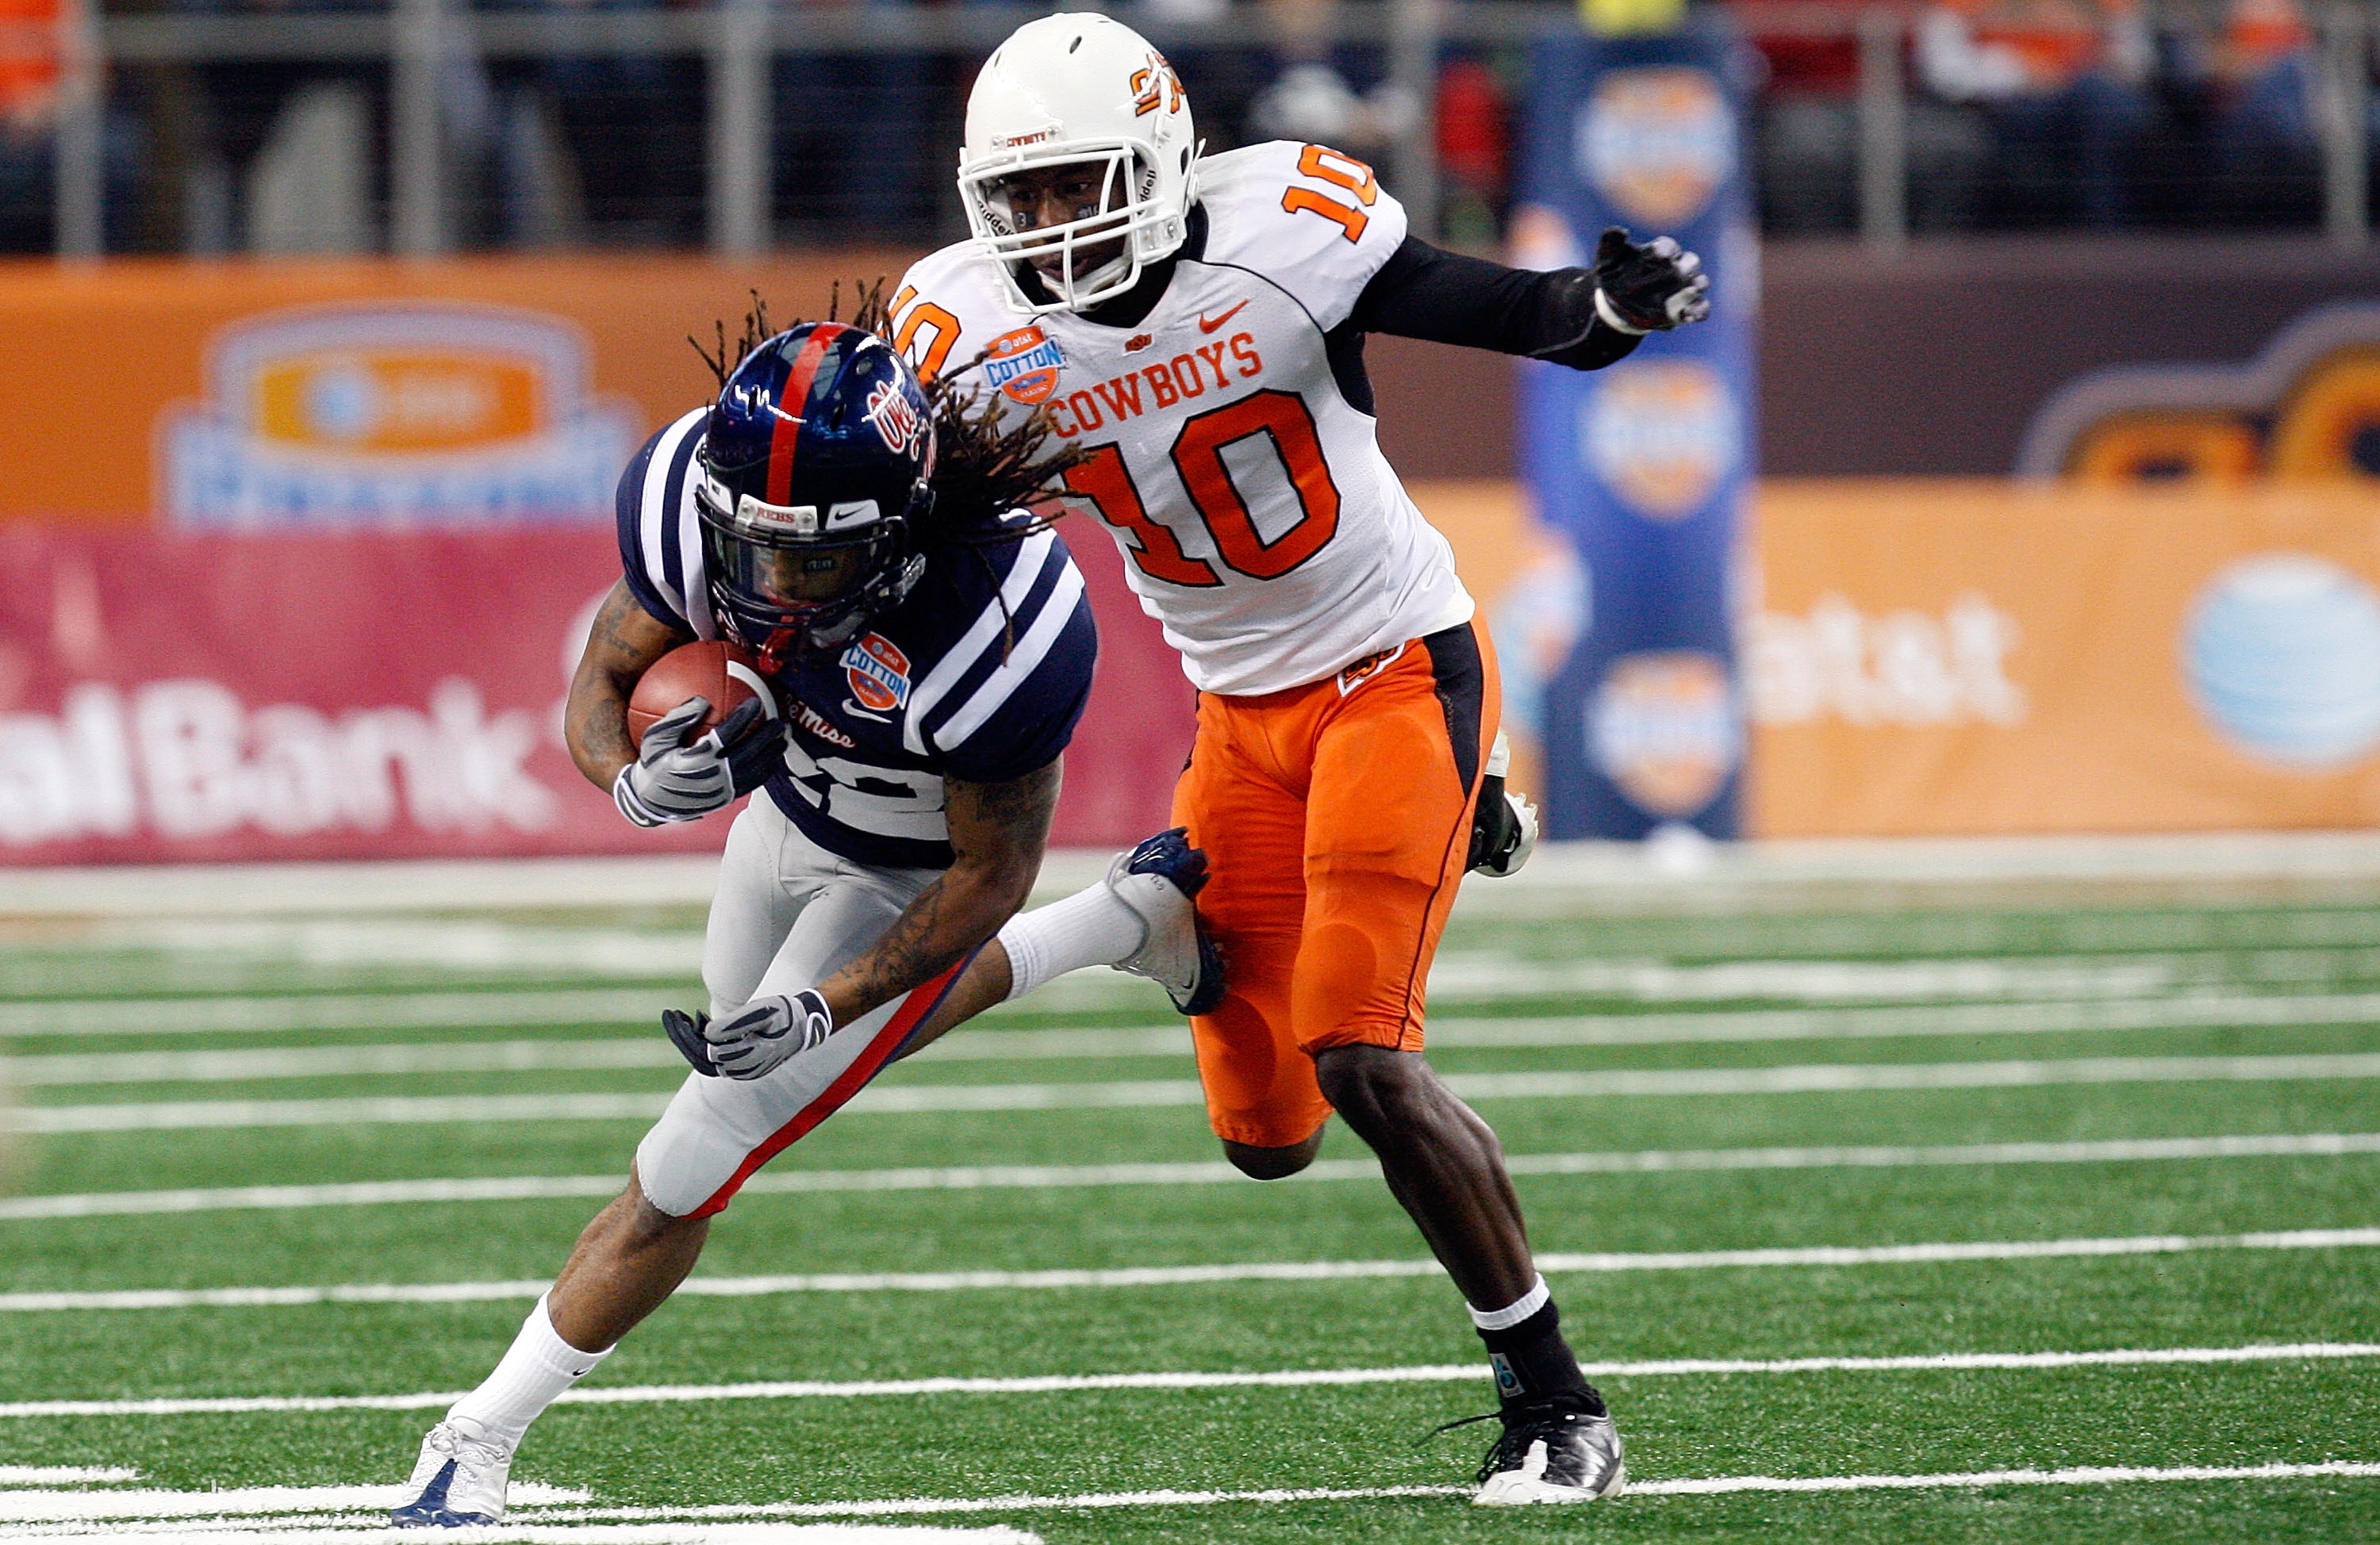 ARLINGTON, TX - JANUARY 02:  Dexter McCluster #22 of the Mississippi Rebels runs the ball against Markelle Martin #10 of the Oklahoma State Cowboys during the AT&T Cotton Bowl on January 2, 2010 at Cowboys Stadium in Arlington, Texas.  (Photo by Ronald Ma